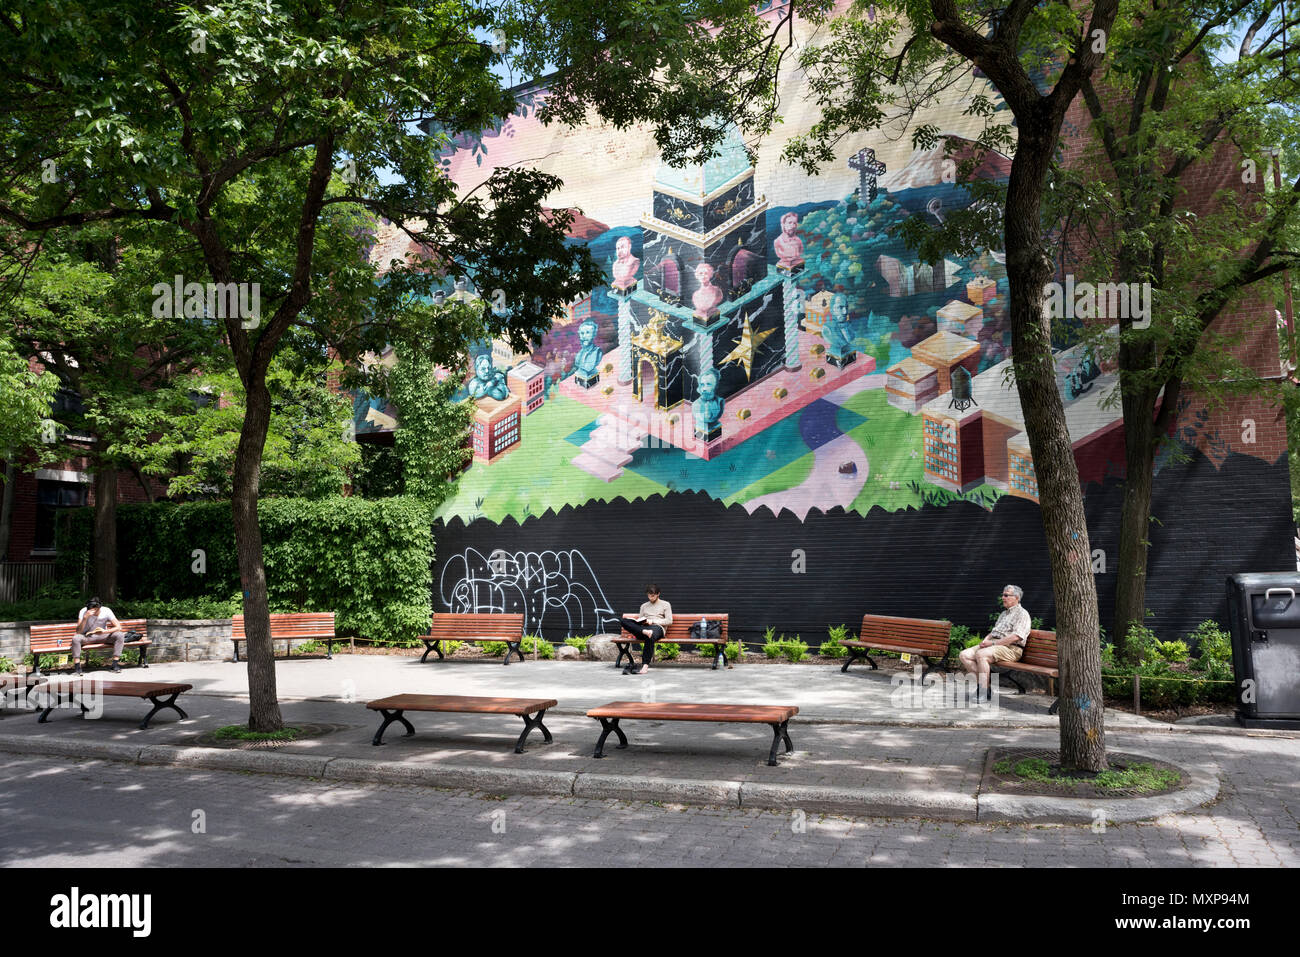 Public art mural and open space, Plateau area of Montreal City, Quebec Province, Canada. - Stock Image